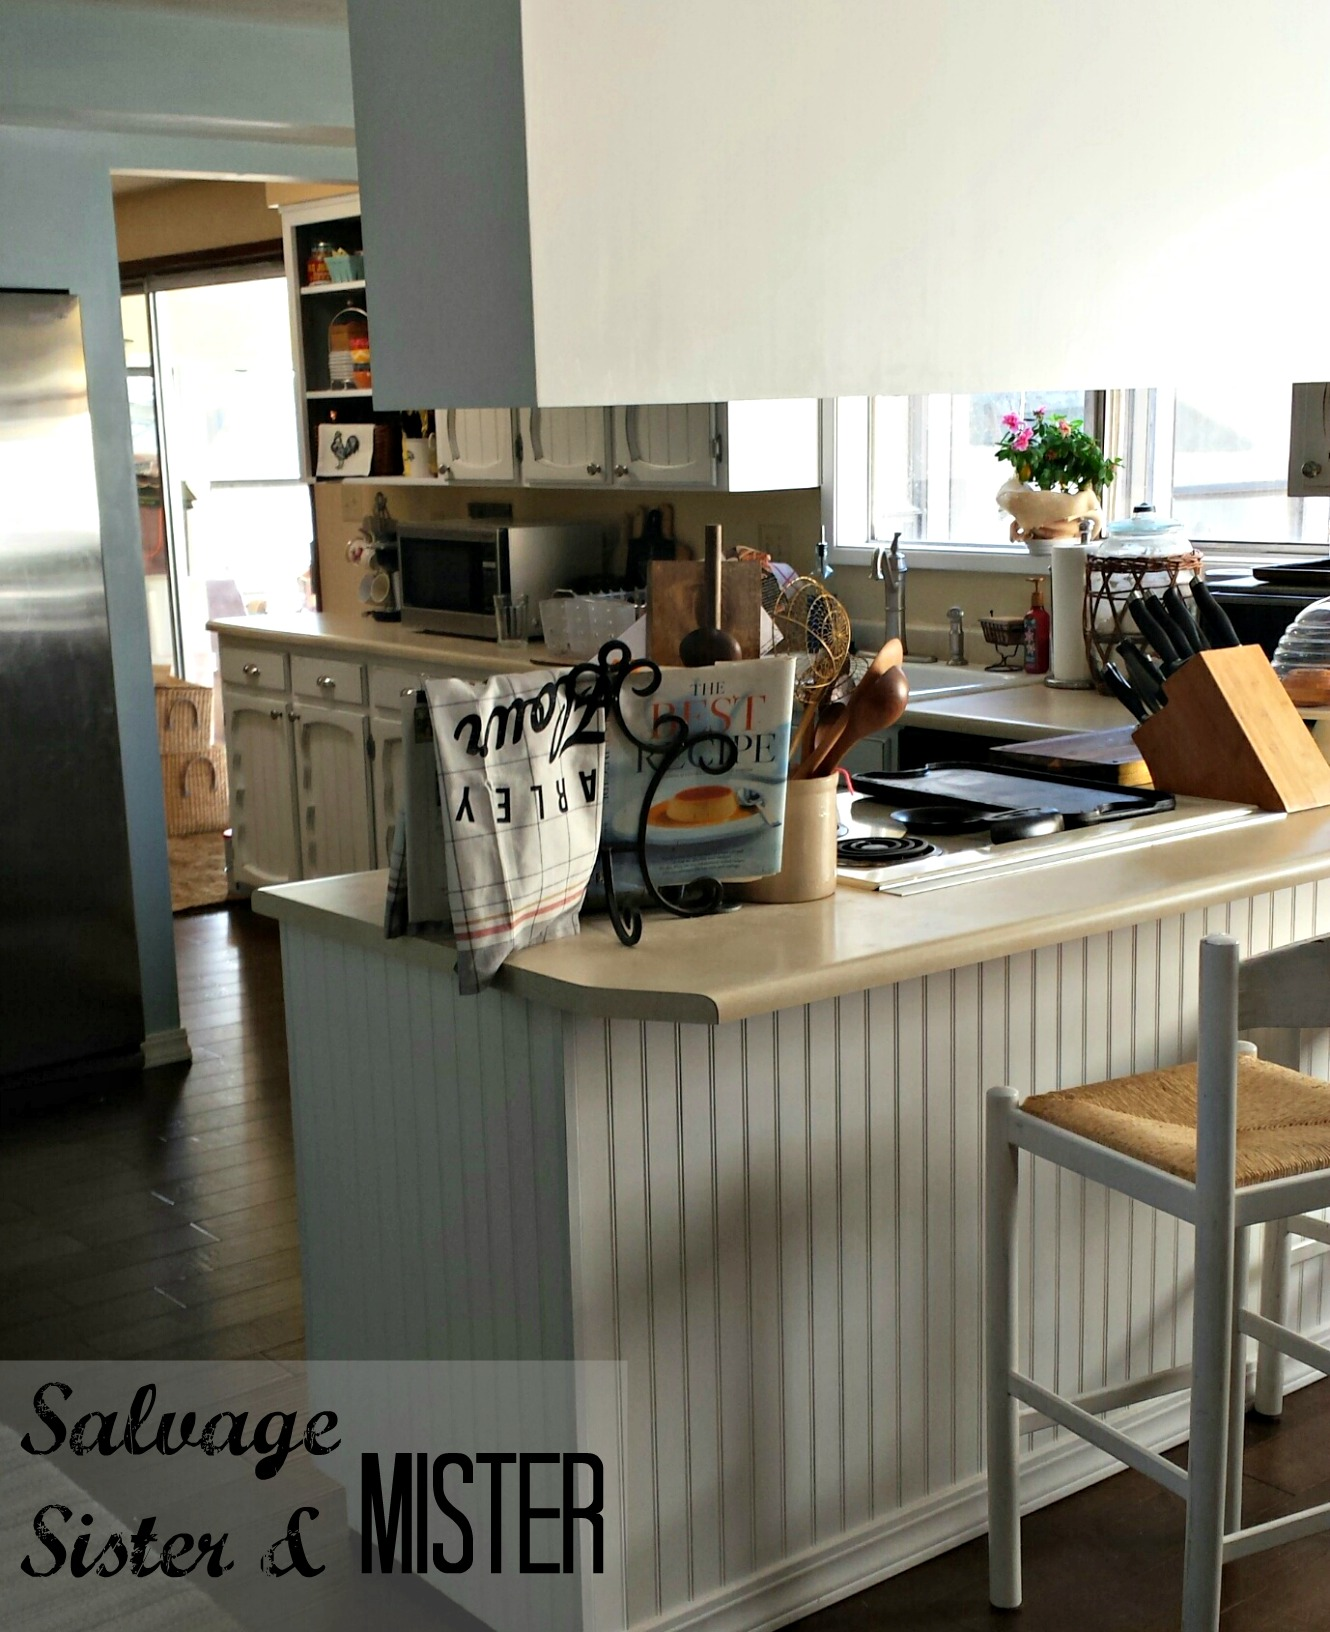 Salvage Kitchen Cabinets: Salvage Sister And Mister